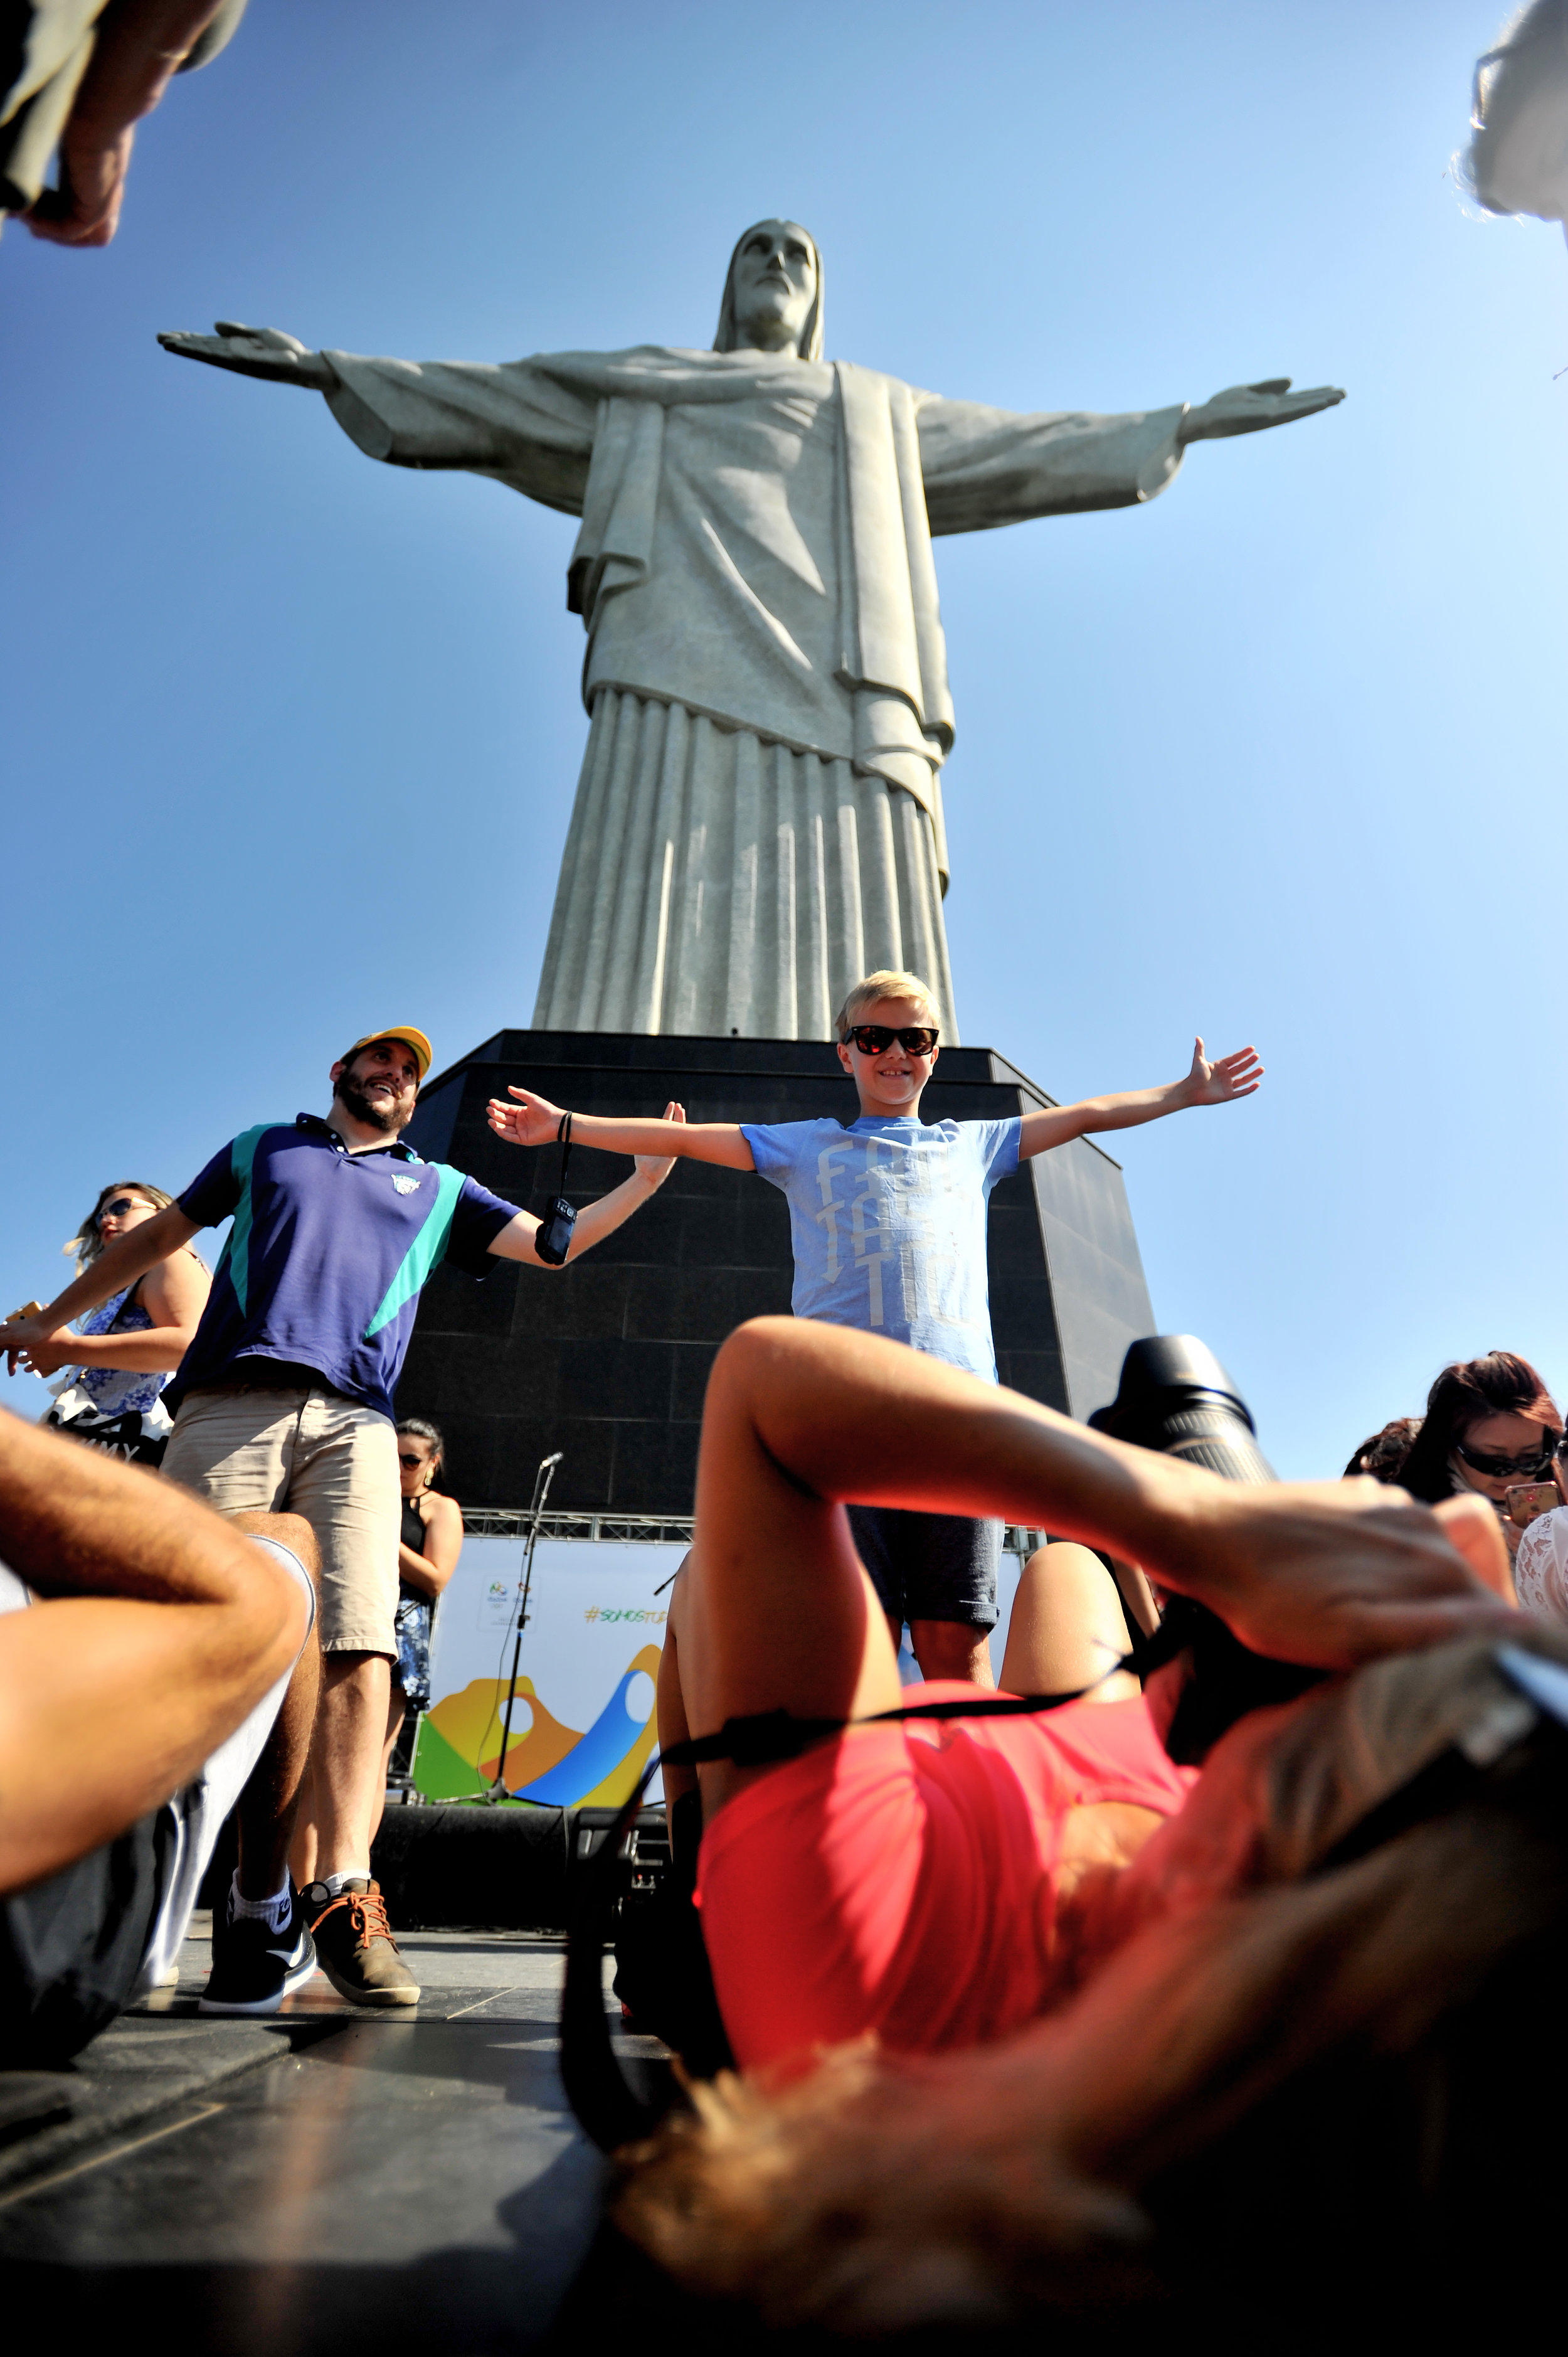 Tourists take photographs at the Statue of Christ the Redeemer in Rio de Janeiro, Brazil, on August 5, 2016. (Sarah Stier | Ball State at the Games)